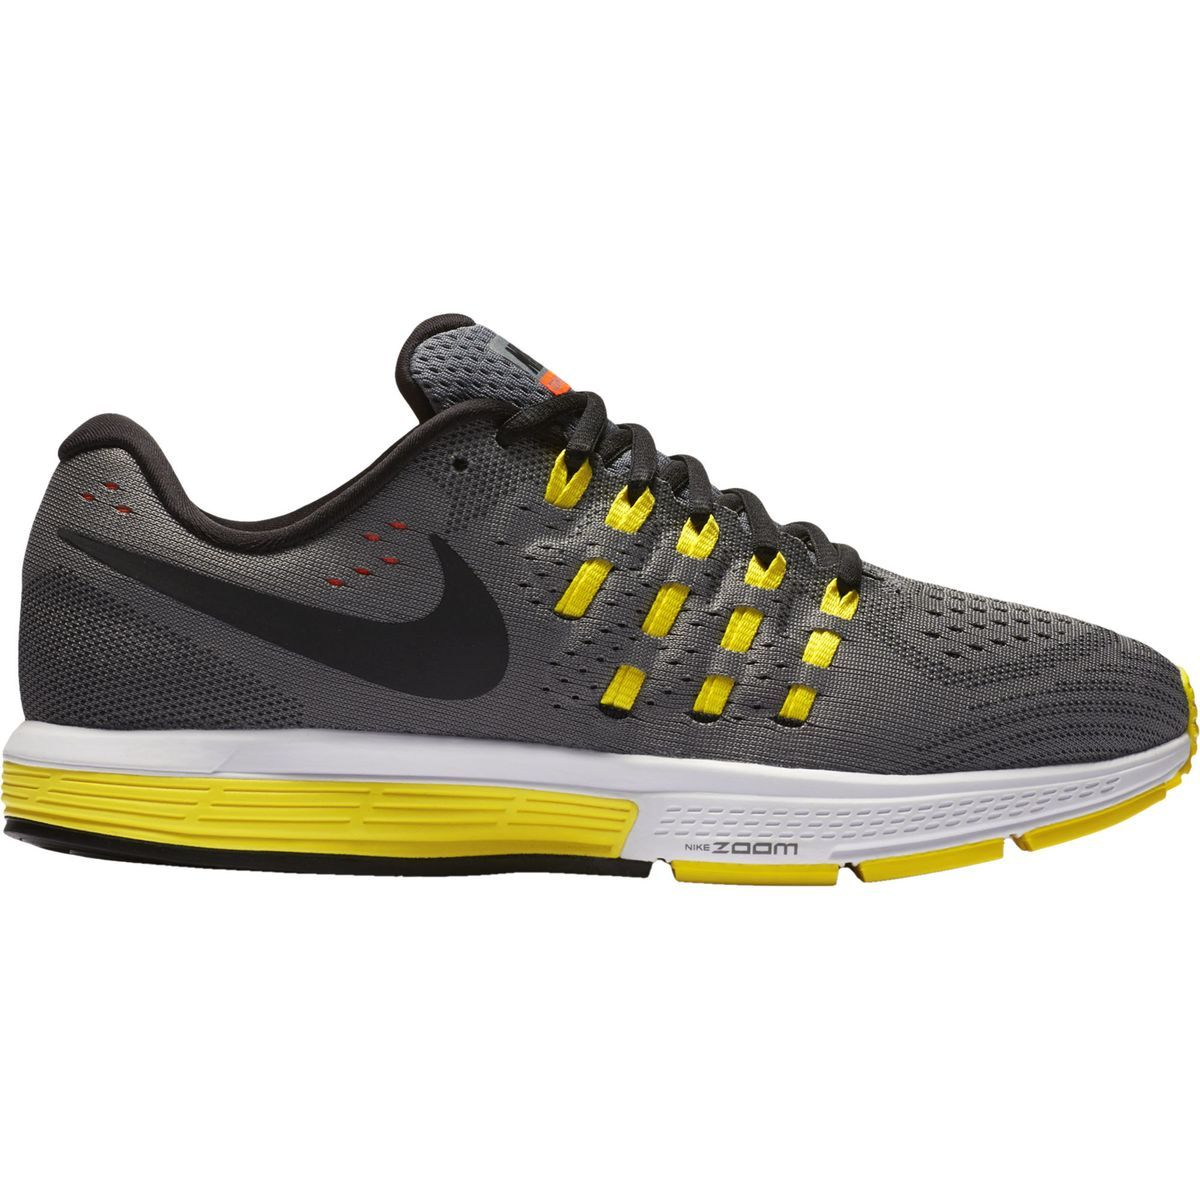 Nike Air Zoom Vomero 11 Running Shoe Cool Grey/Hyper Orange/Opti YelloBlack  10.0